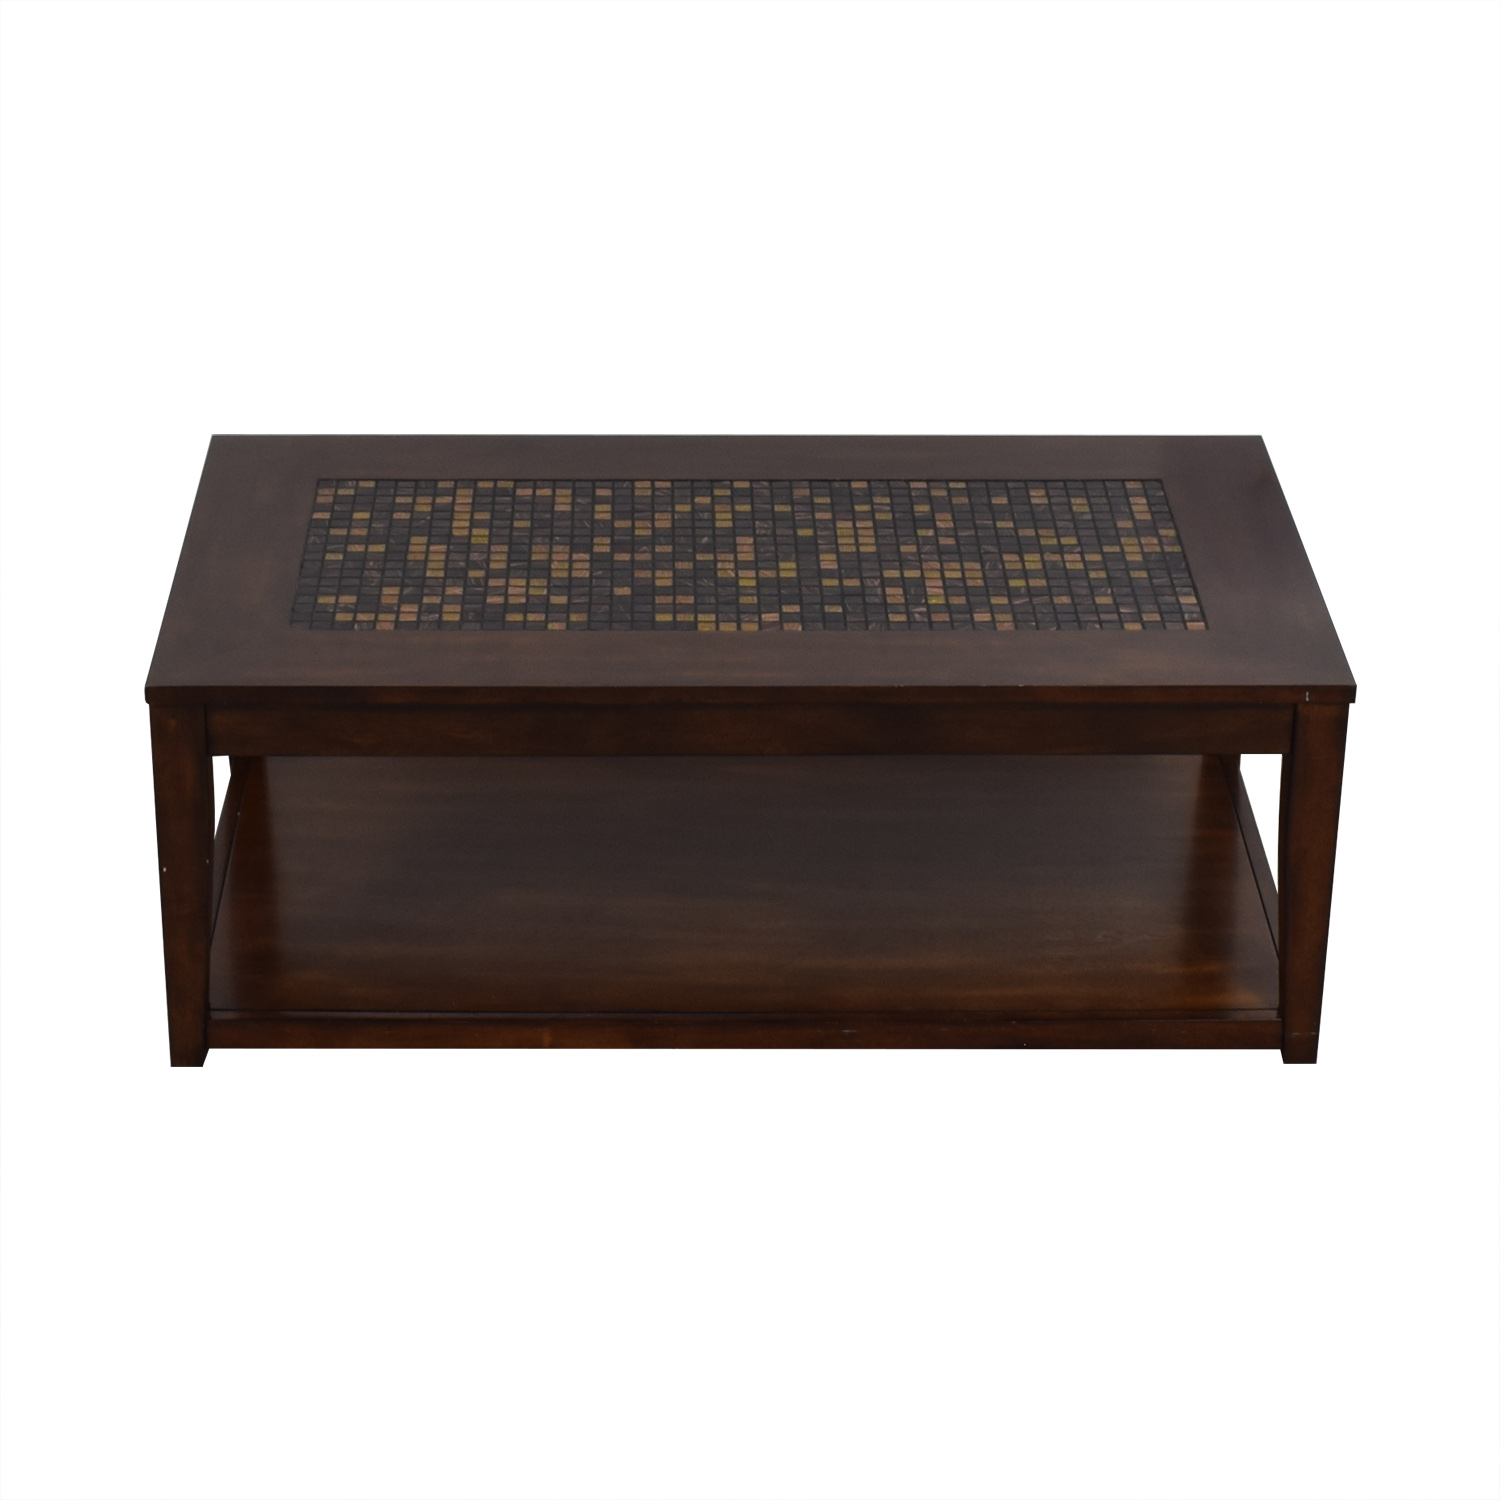 Wood and Tiled Coffee Table dimensions